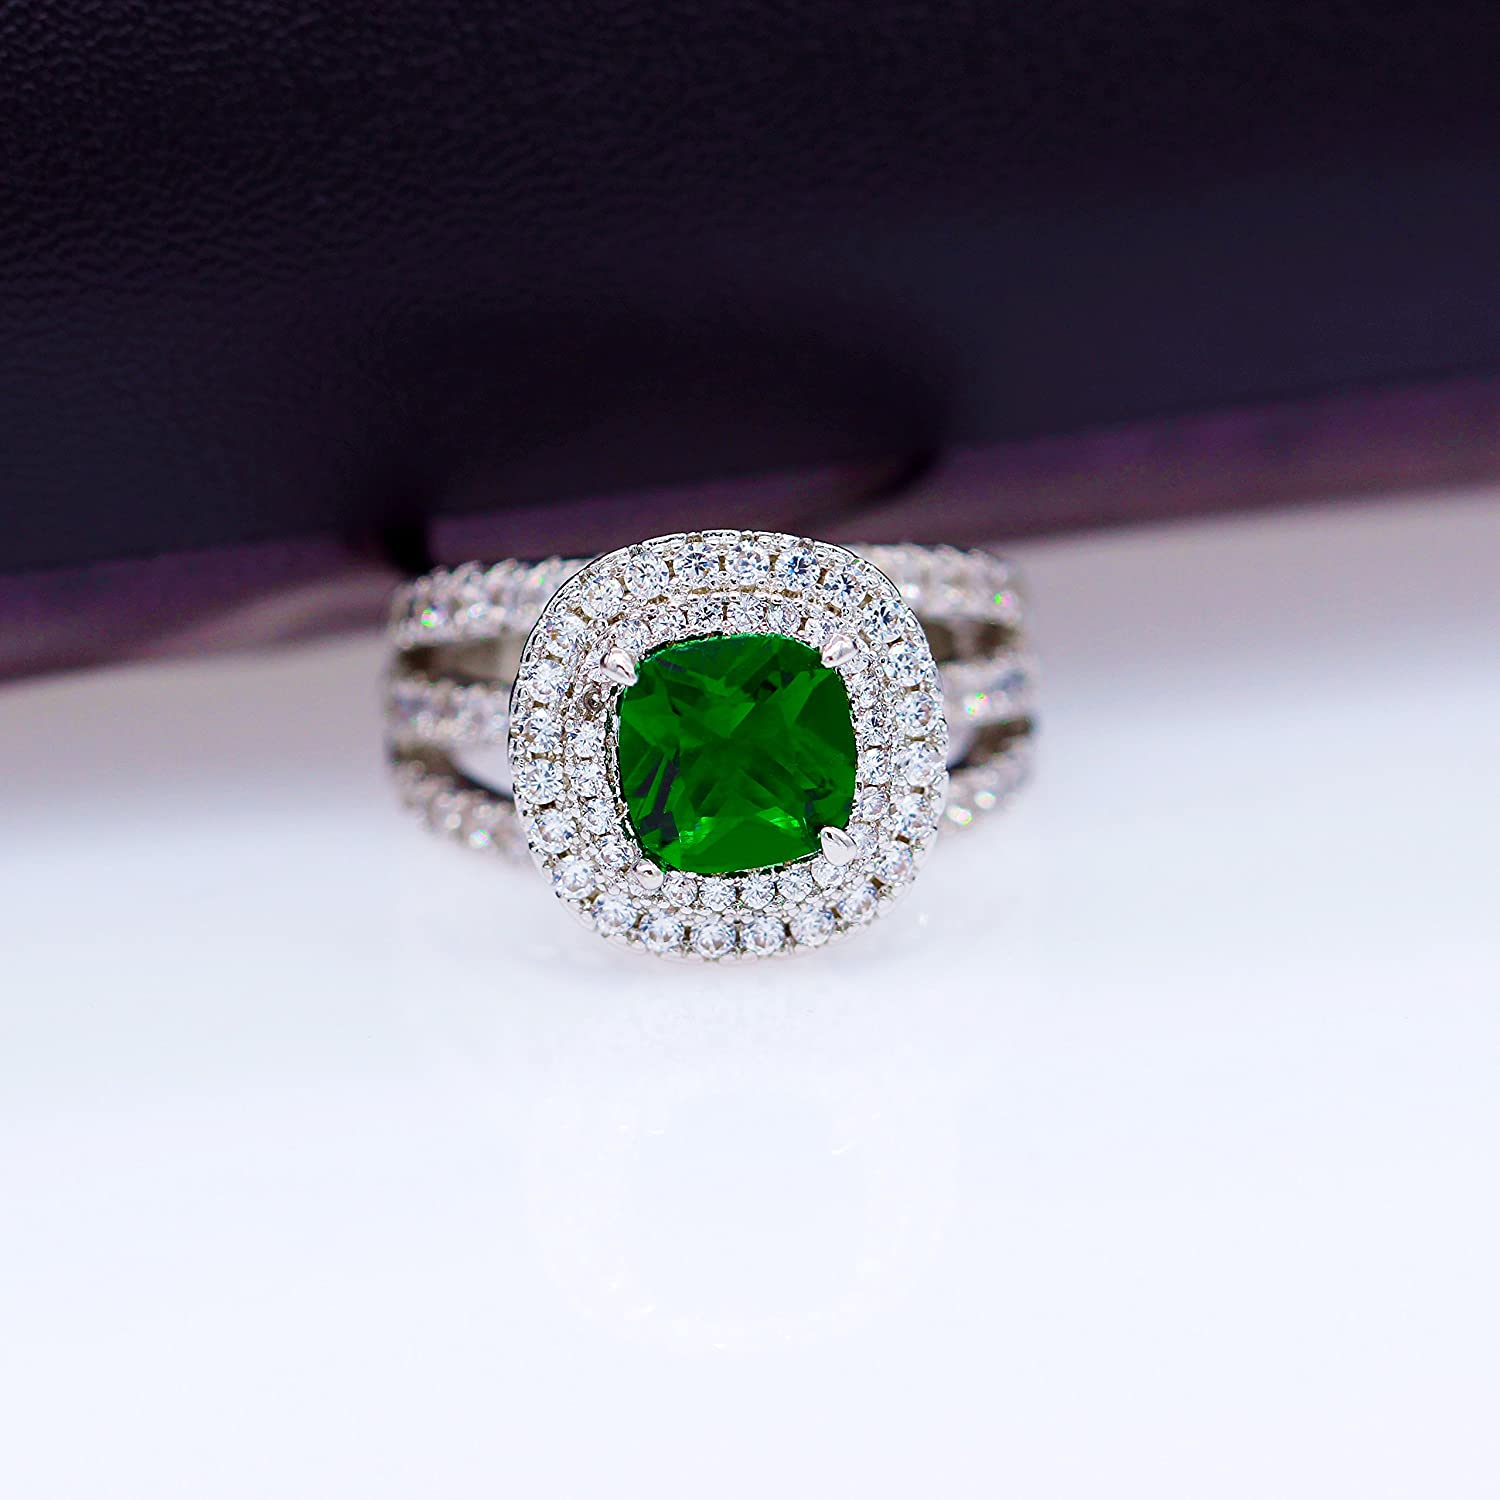 Uloveido Large Simulated Emerald Statement Halo Cocktail Ring with Green Crystal for Women Party Anniversary RJ213